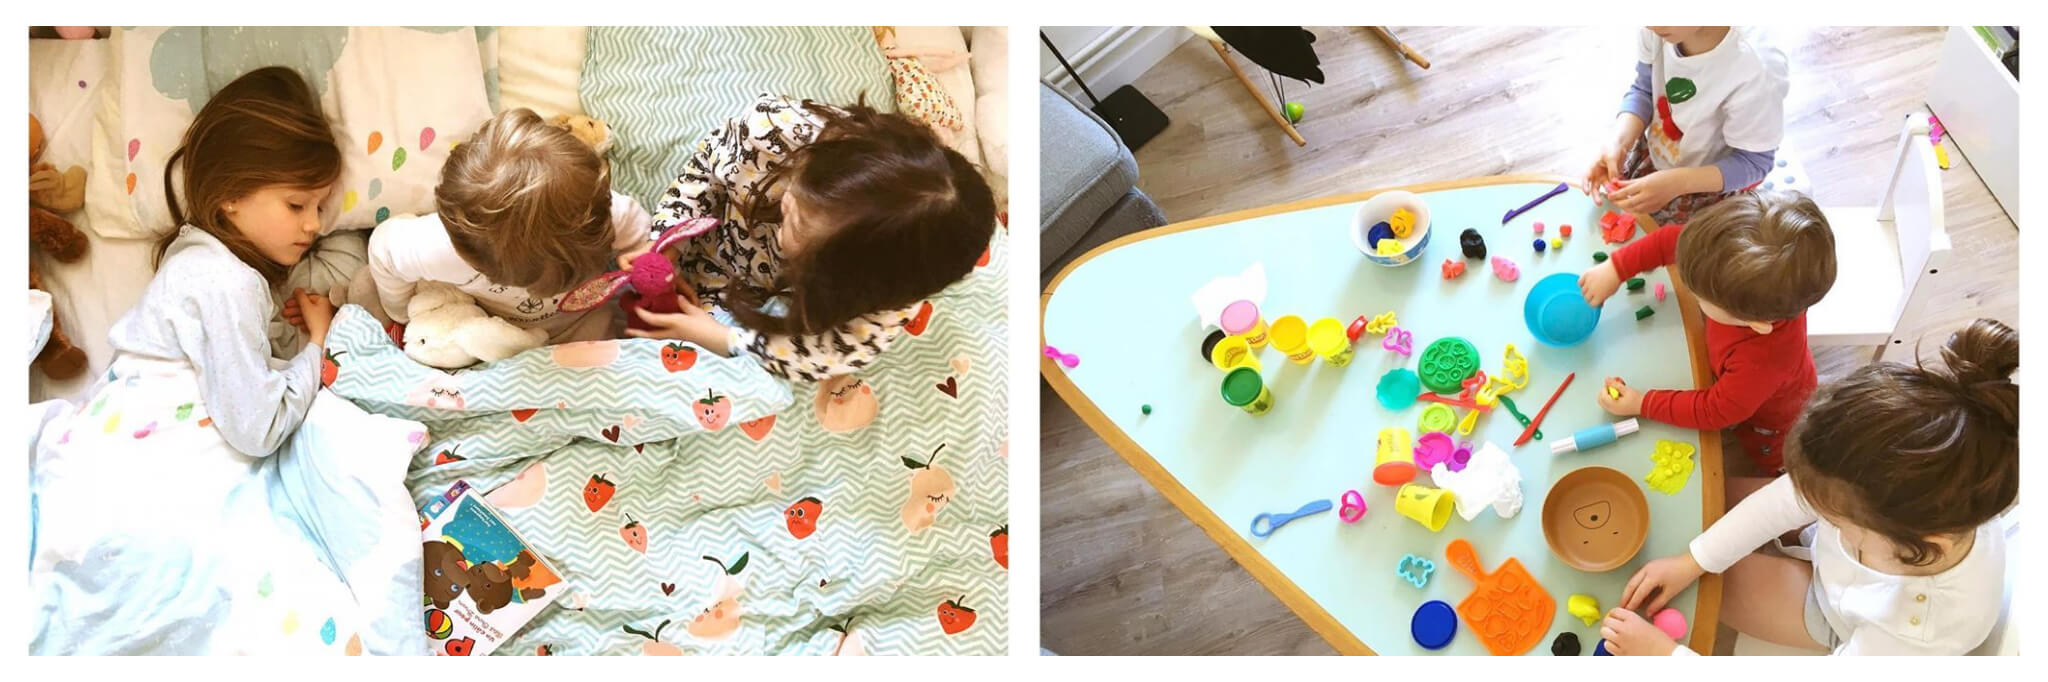 Left: Three children sit and lay in bed under a blue duvet that has a print of pink and red strawberries, Right: Three children play with play-doh and colorful toys on top of a blue table.